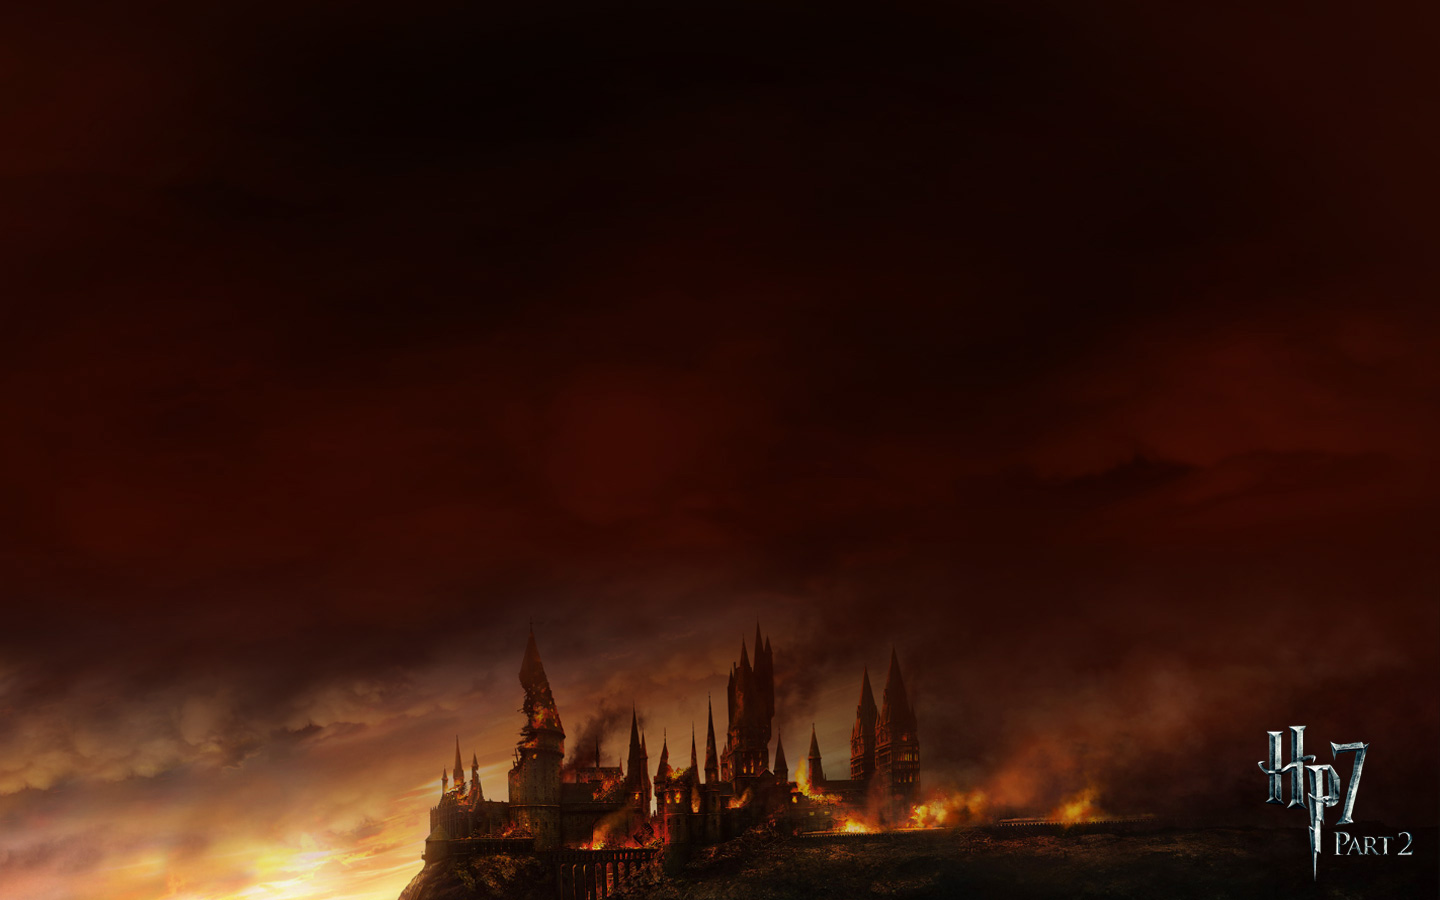 Harry Potter and the Deathly Hallows: Part 2 Wallpaper 10